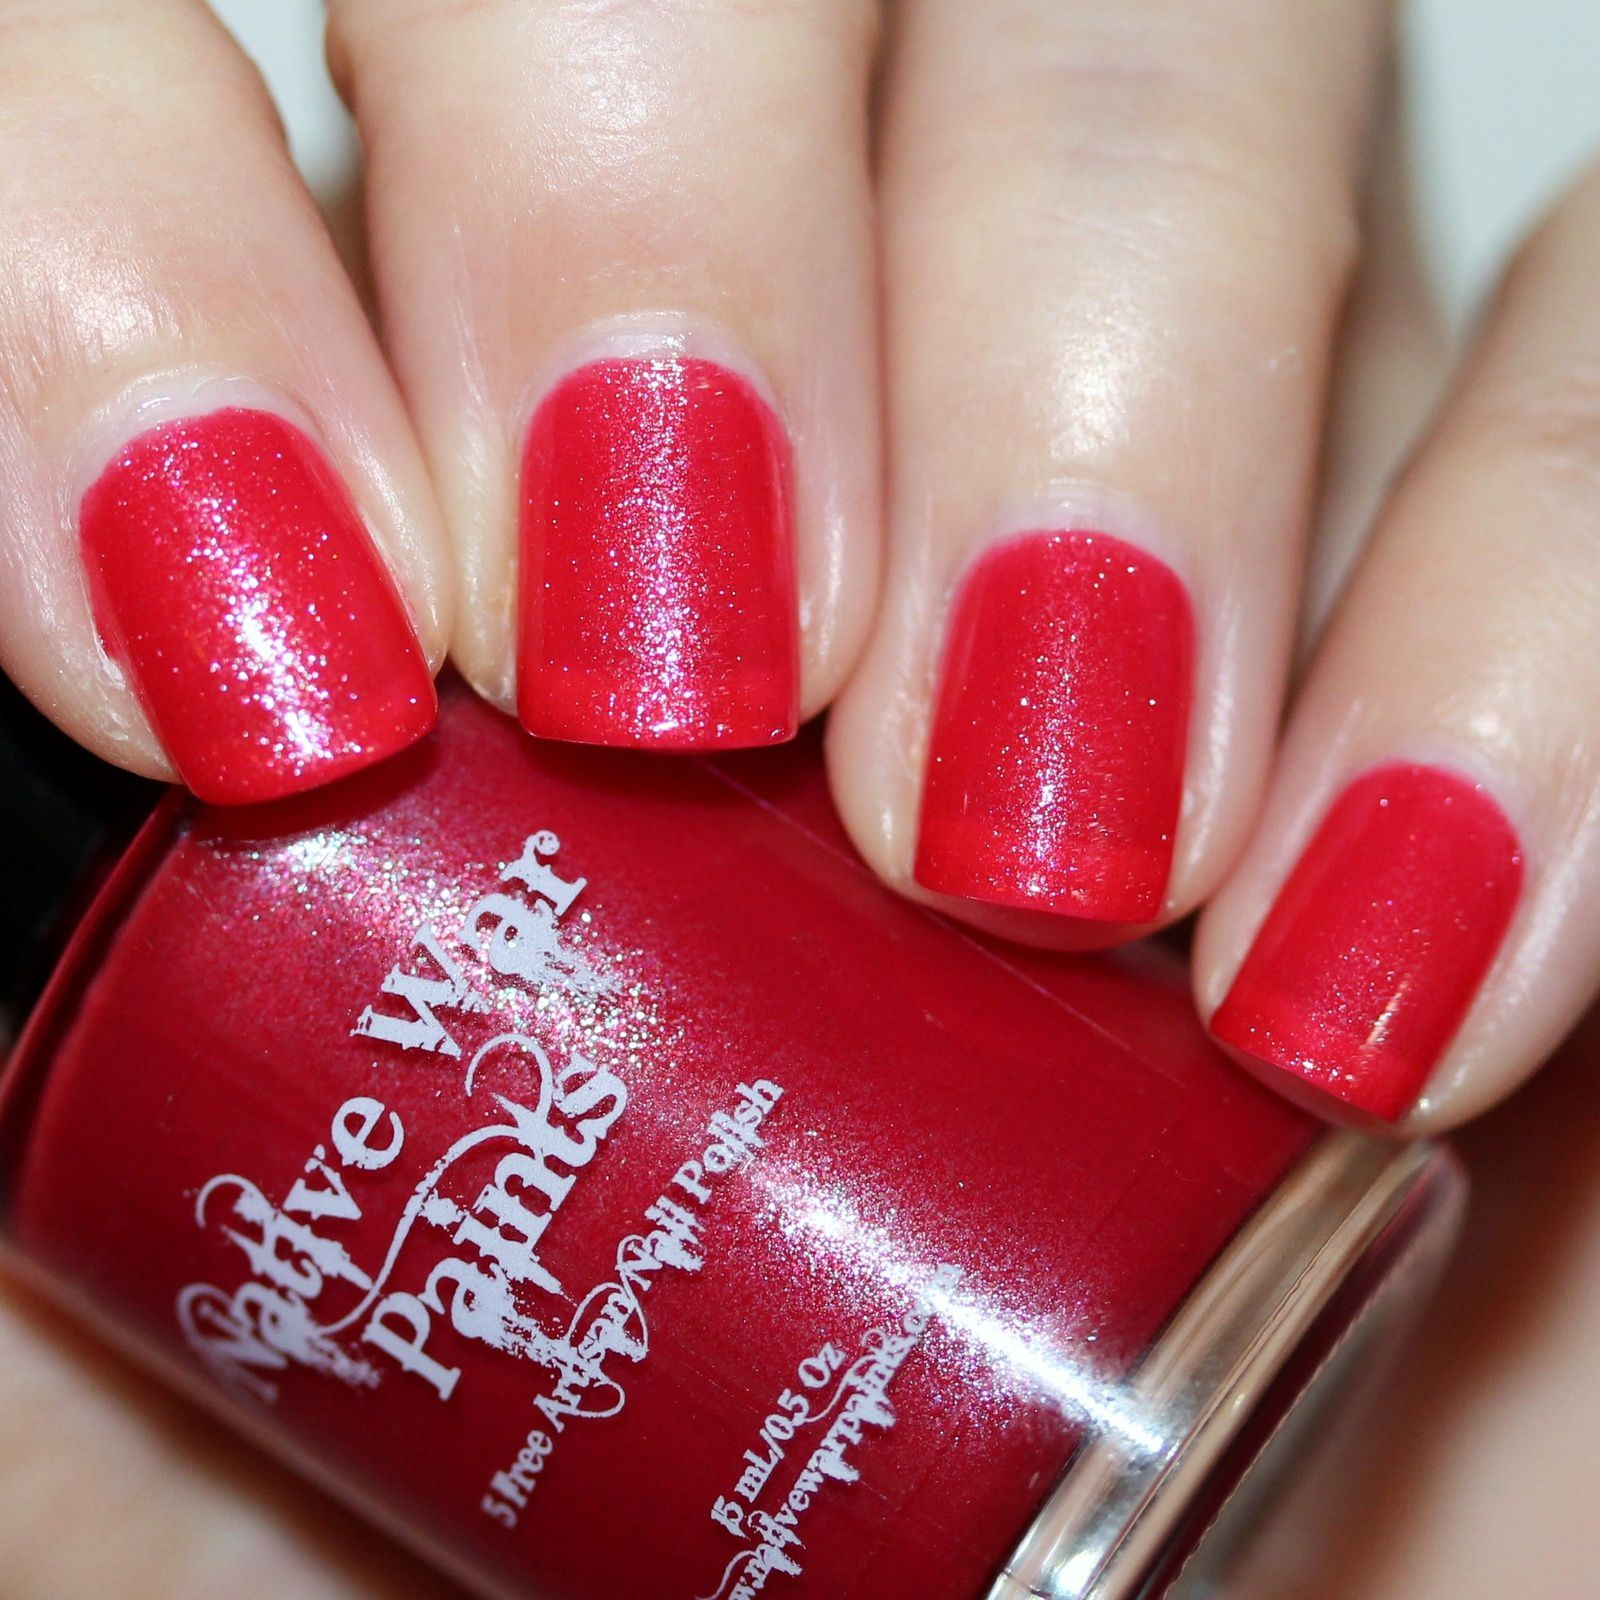 NWP Wrapped in Red (3 coats, no top coat)